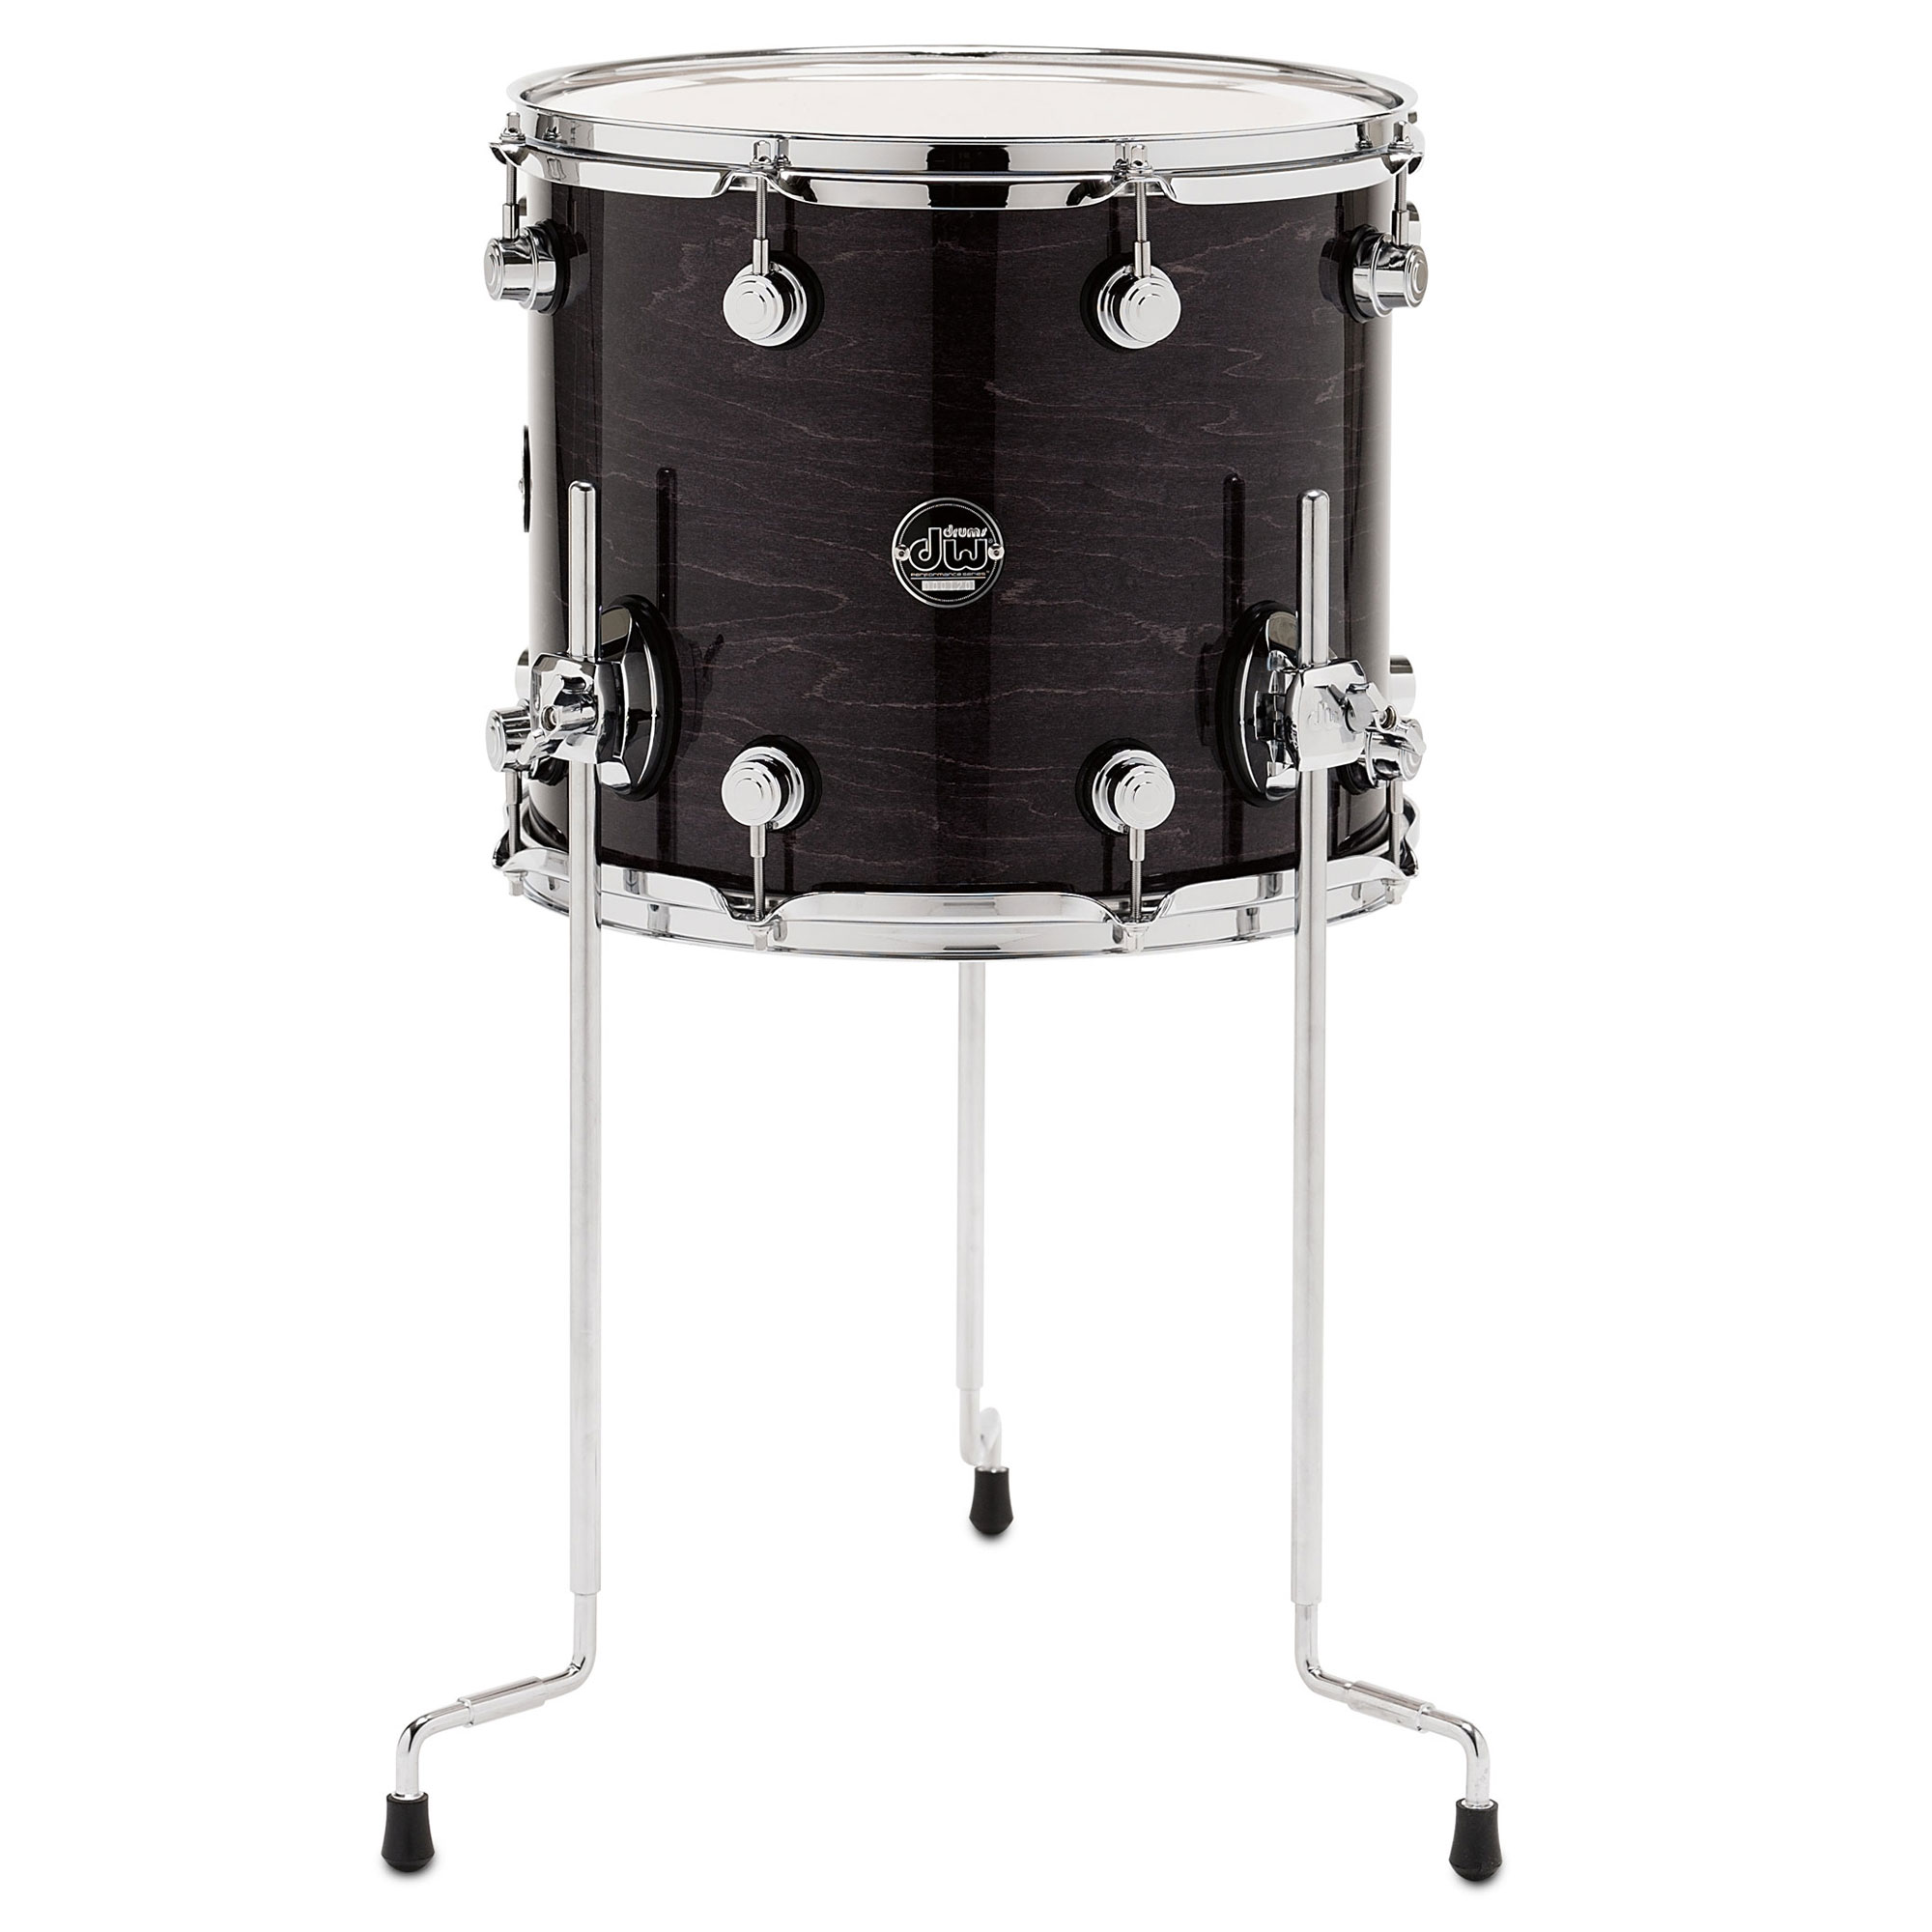 "DW Performance Series 12"" (Deep) x 14"" (Diameter) Tom"